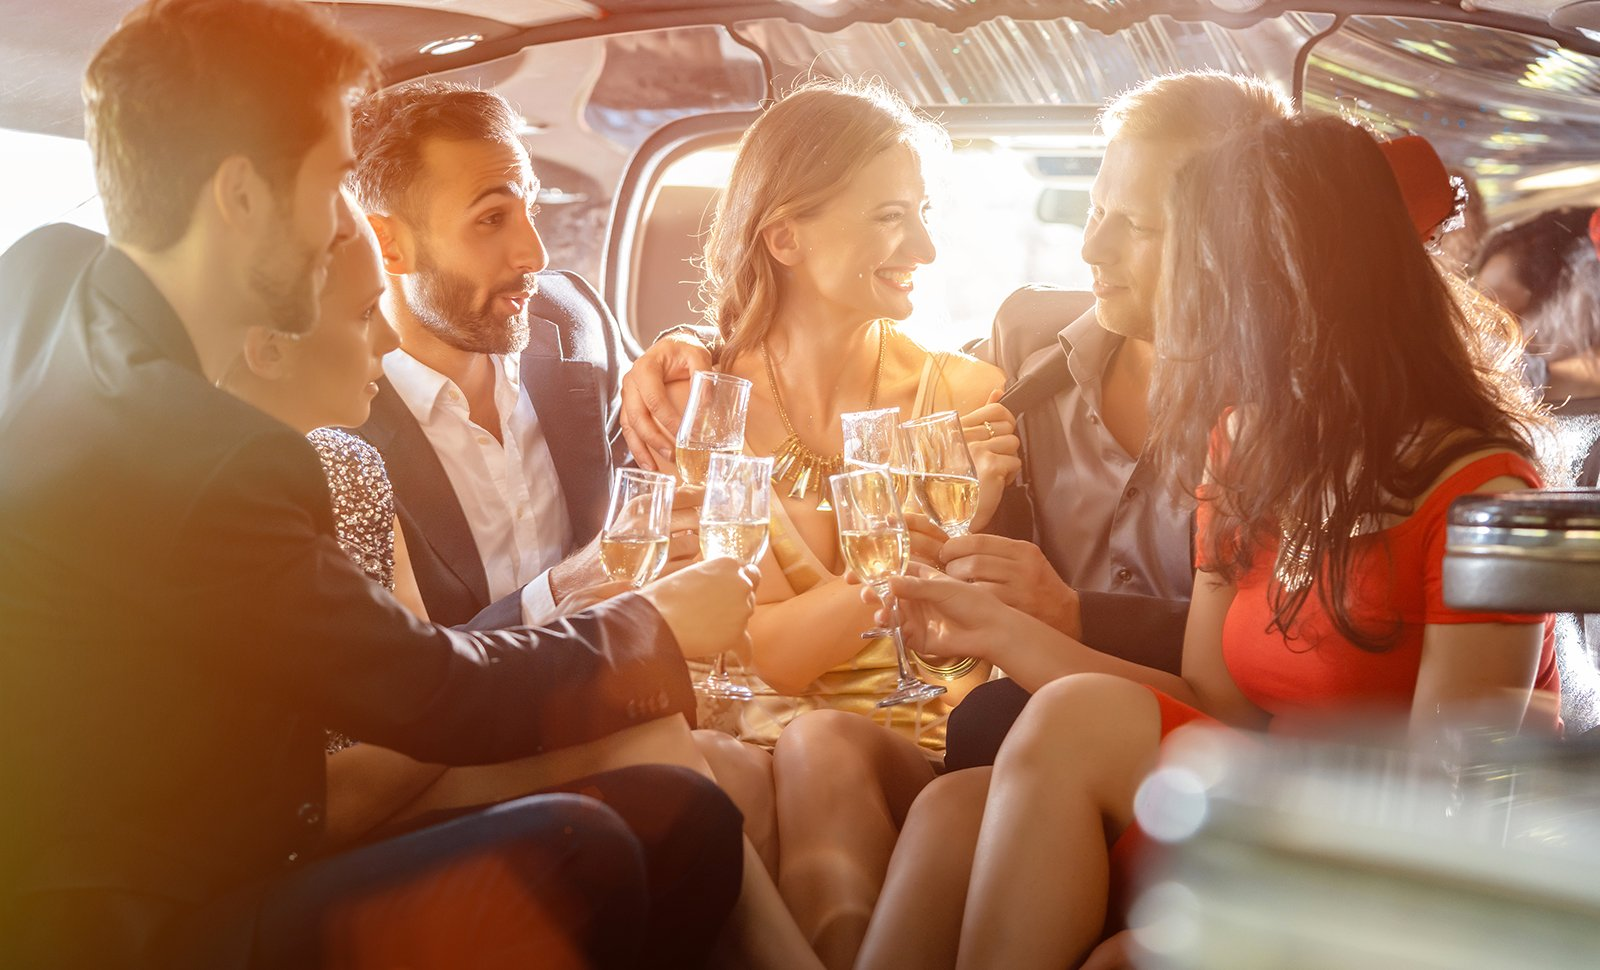 Should You Consider A Combined Bachelor & Bachelorette Party?